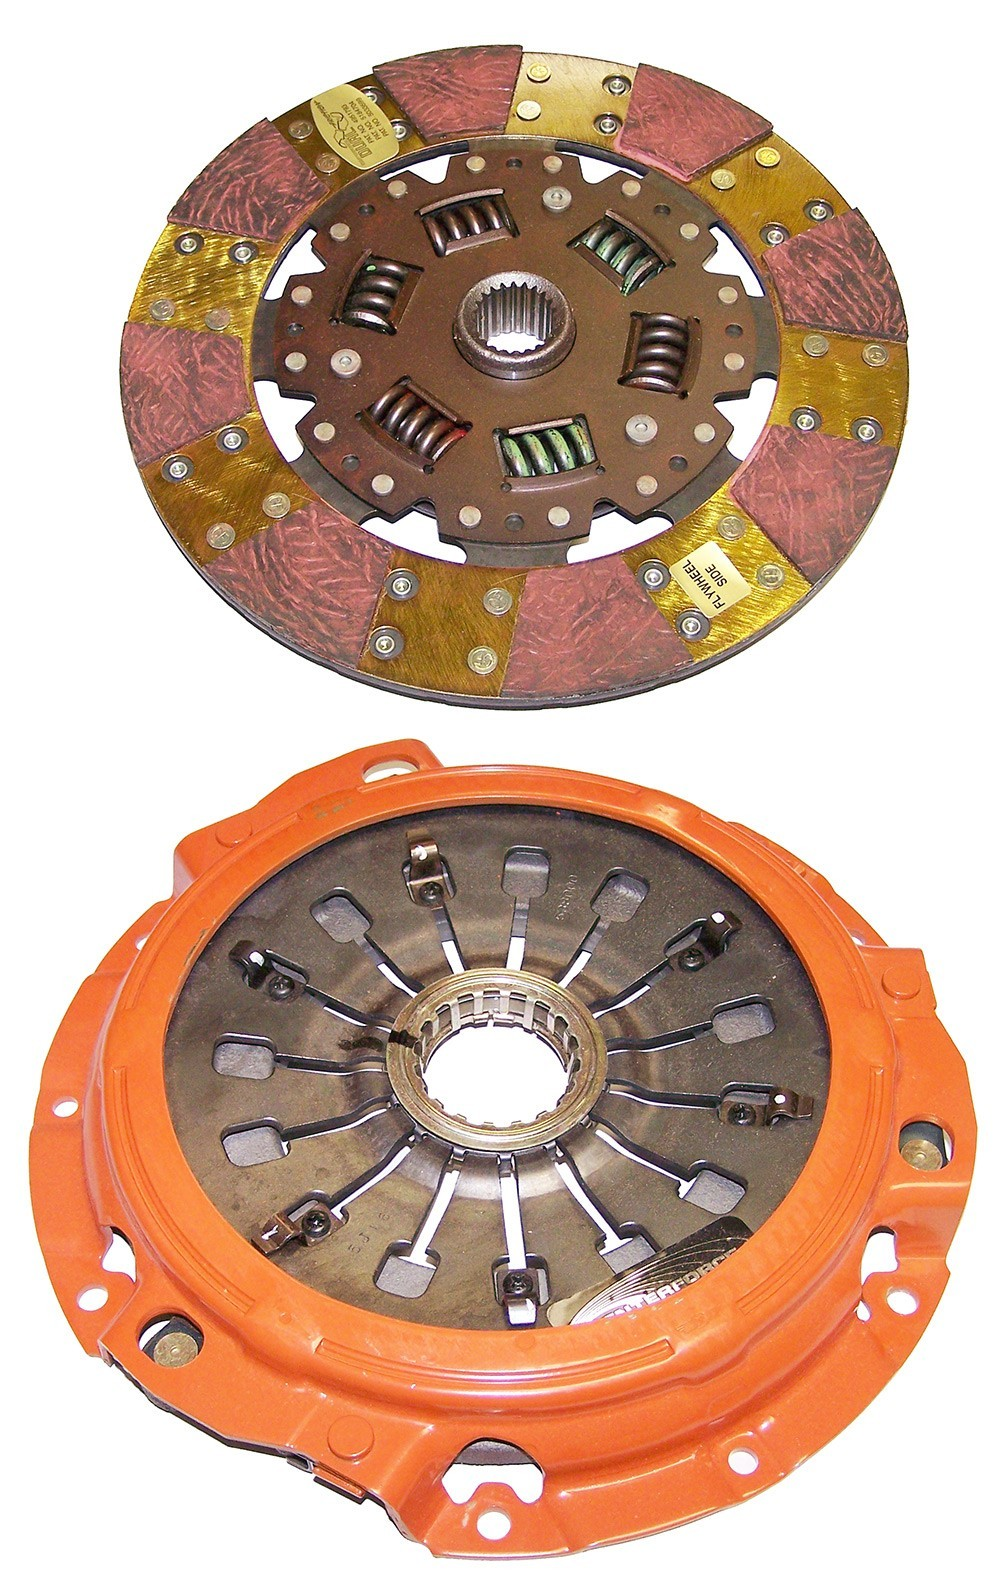 93-95 Rx7 Centerforce Dual Friction Clutch Kit (DF950600)